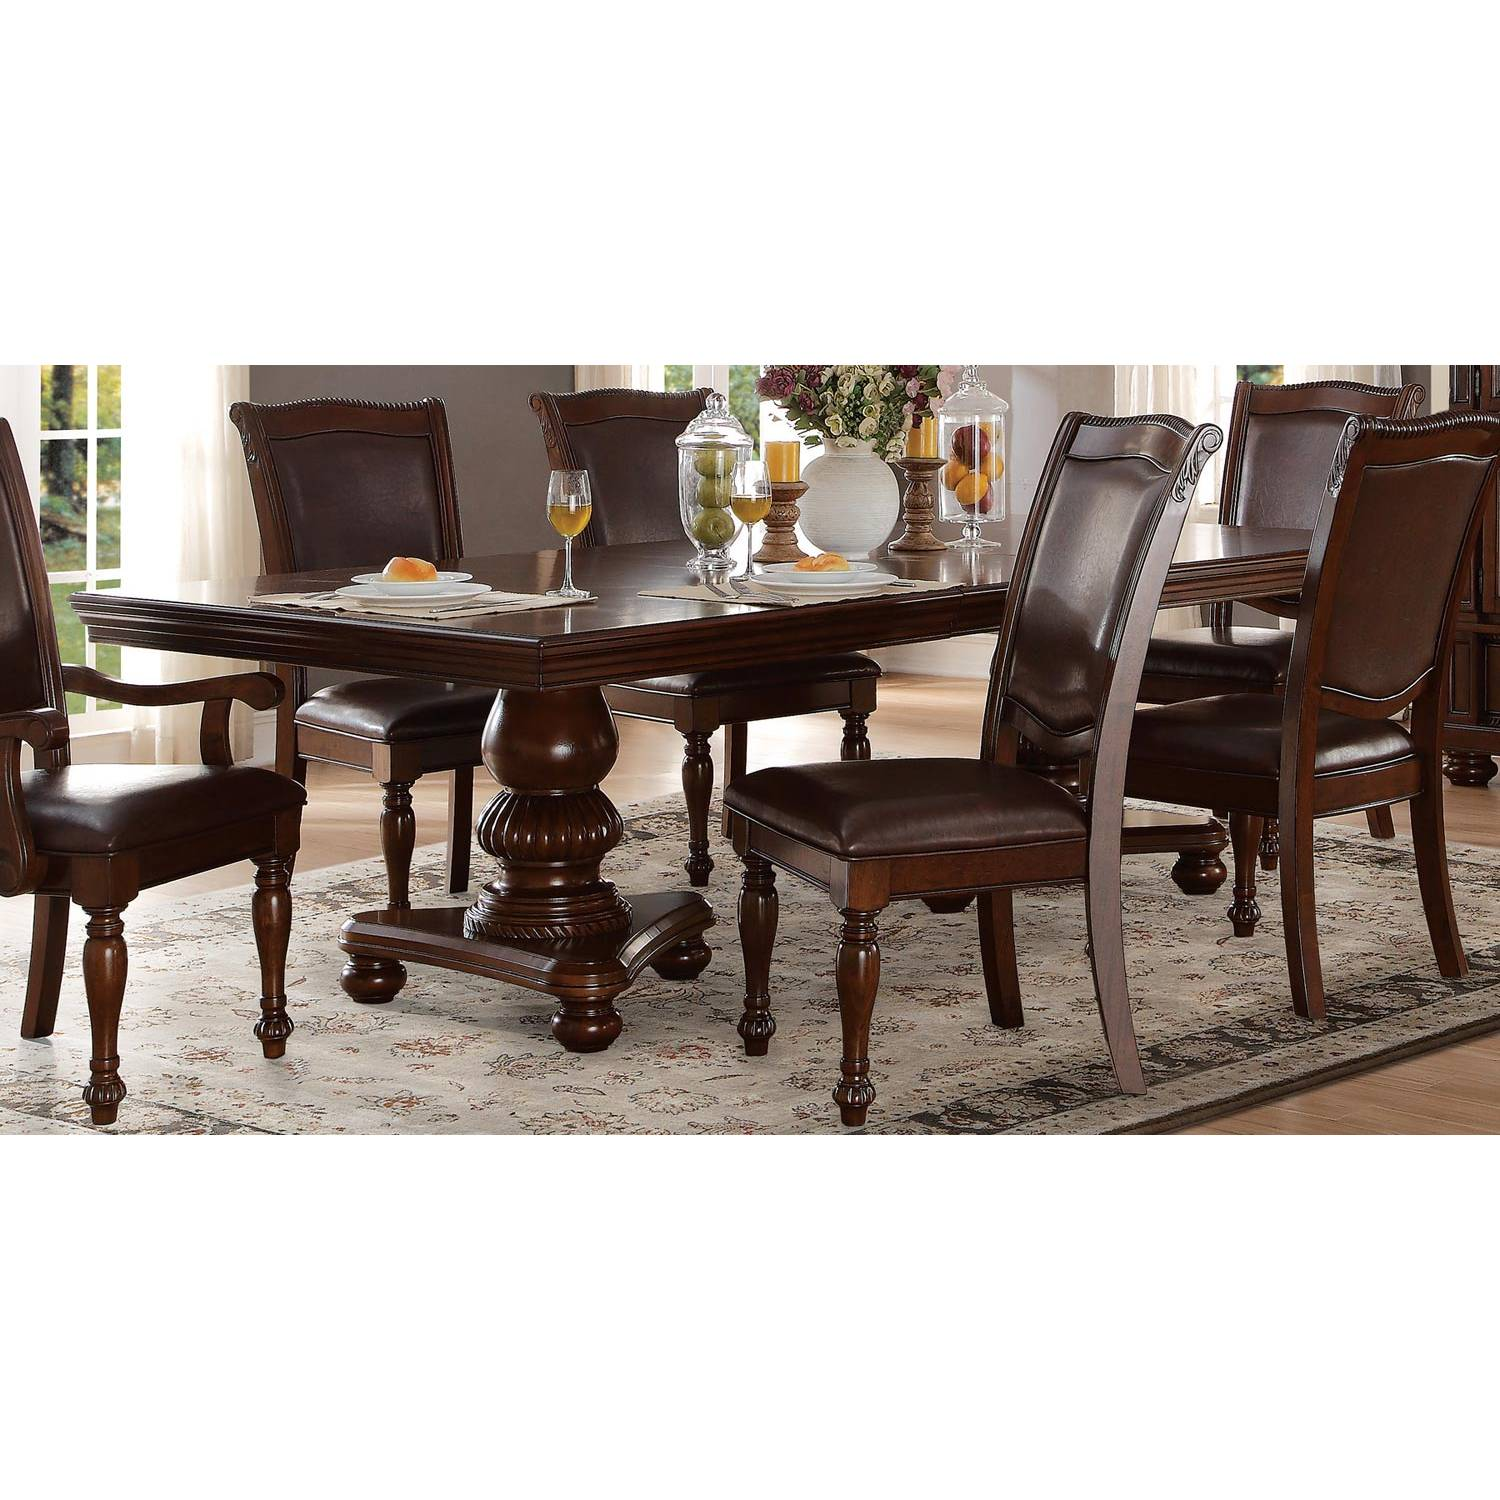 Double Pedestal Dining Table - Brown Cherry